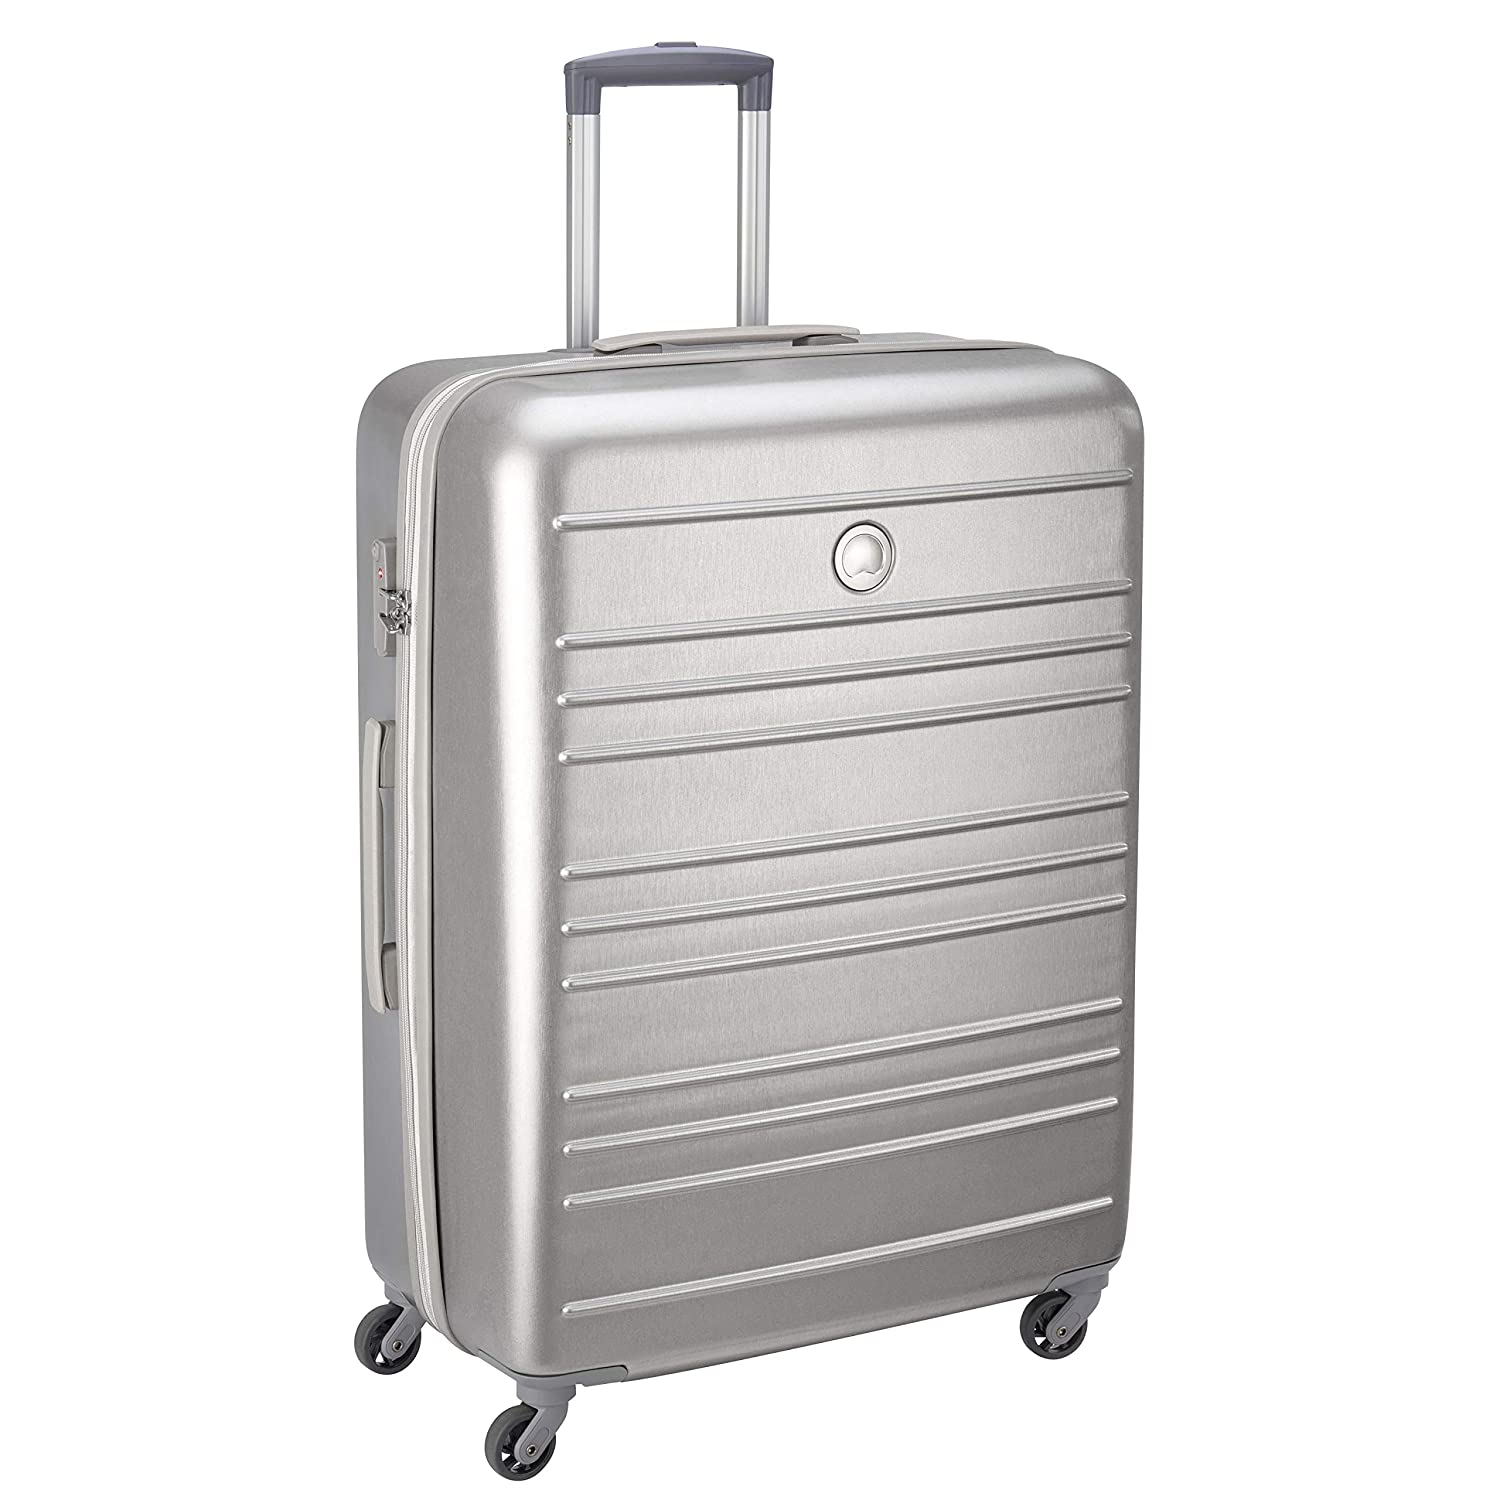 Delsey ABS 76 cms Silver Hardsided Cabin Luggage (00344582121)